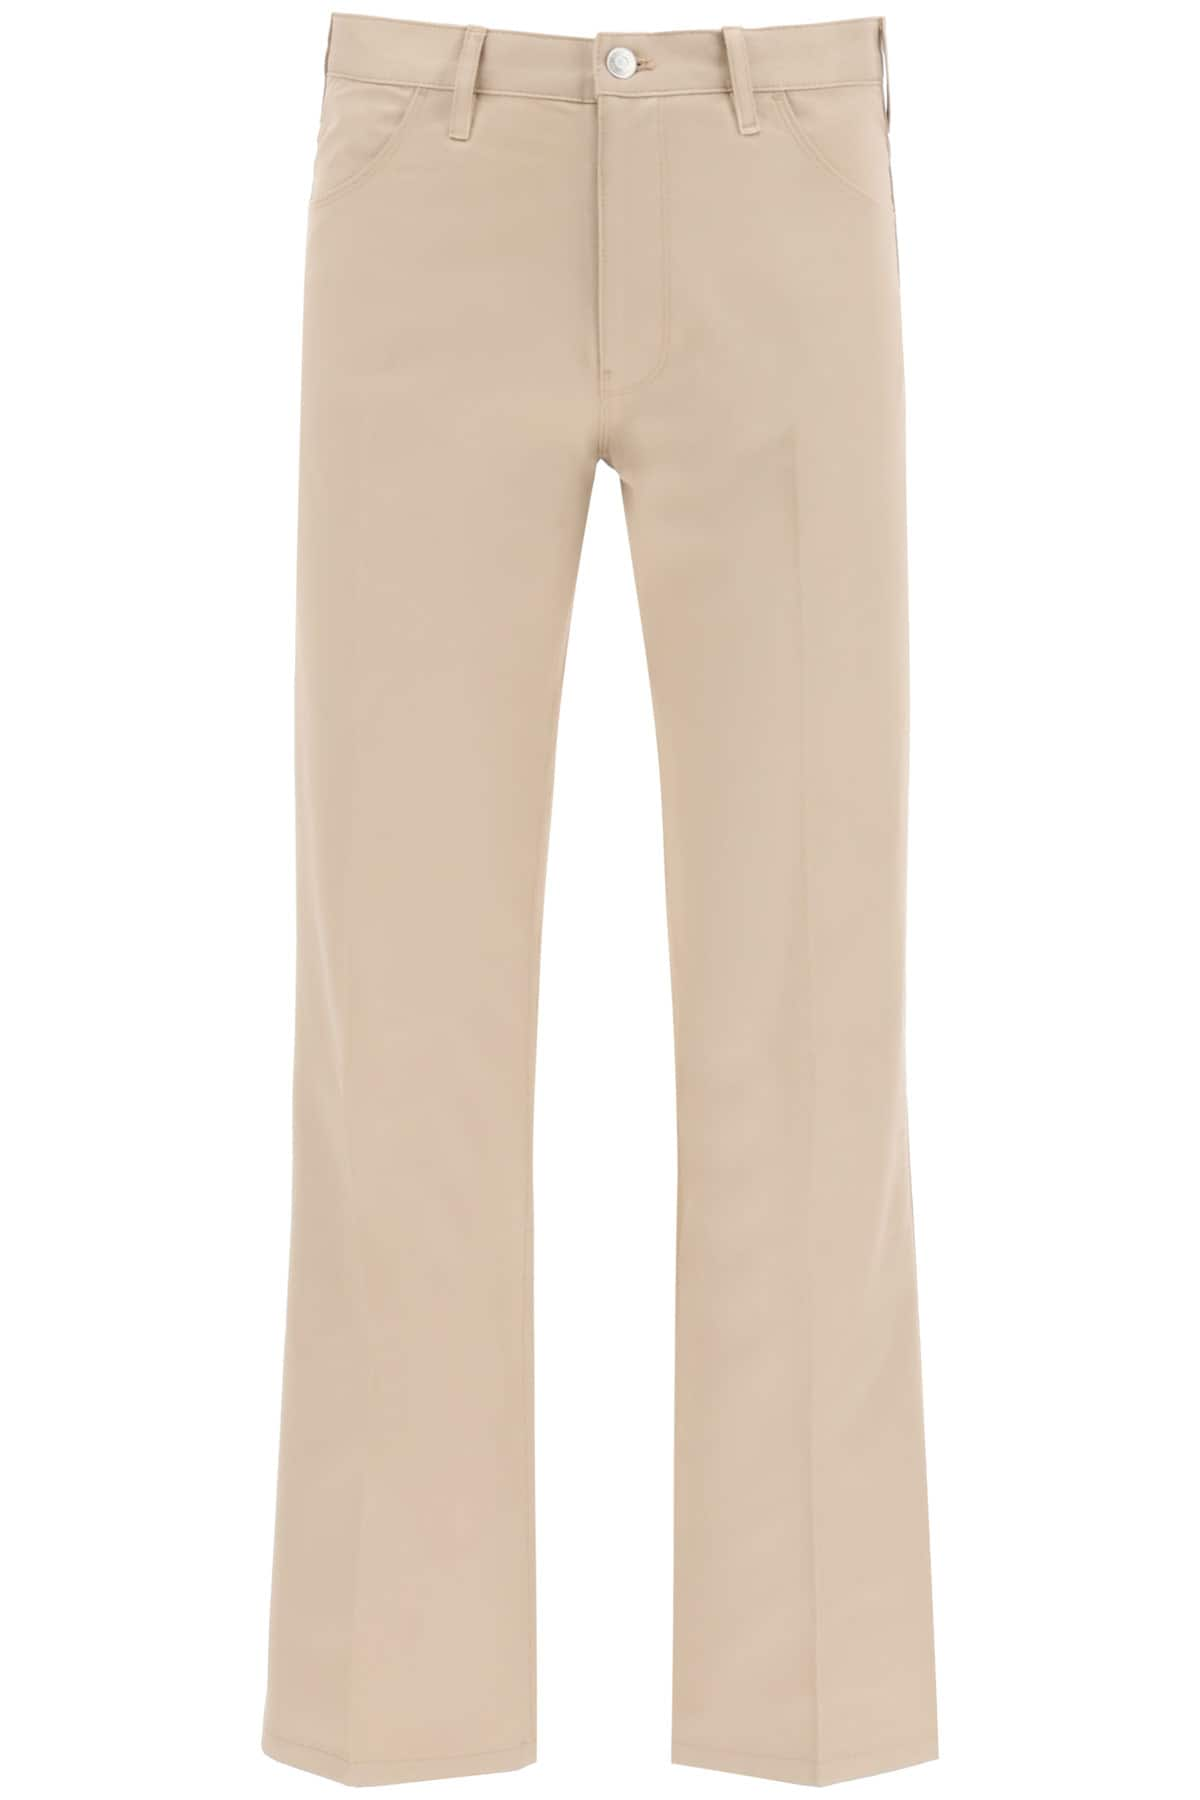 TOMMY HILFIGER COLLECTION TROUSERS WITH EMBROIDERED ARCHIVE EMBROIDERY 34 Beige Cotton